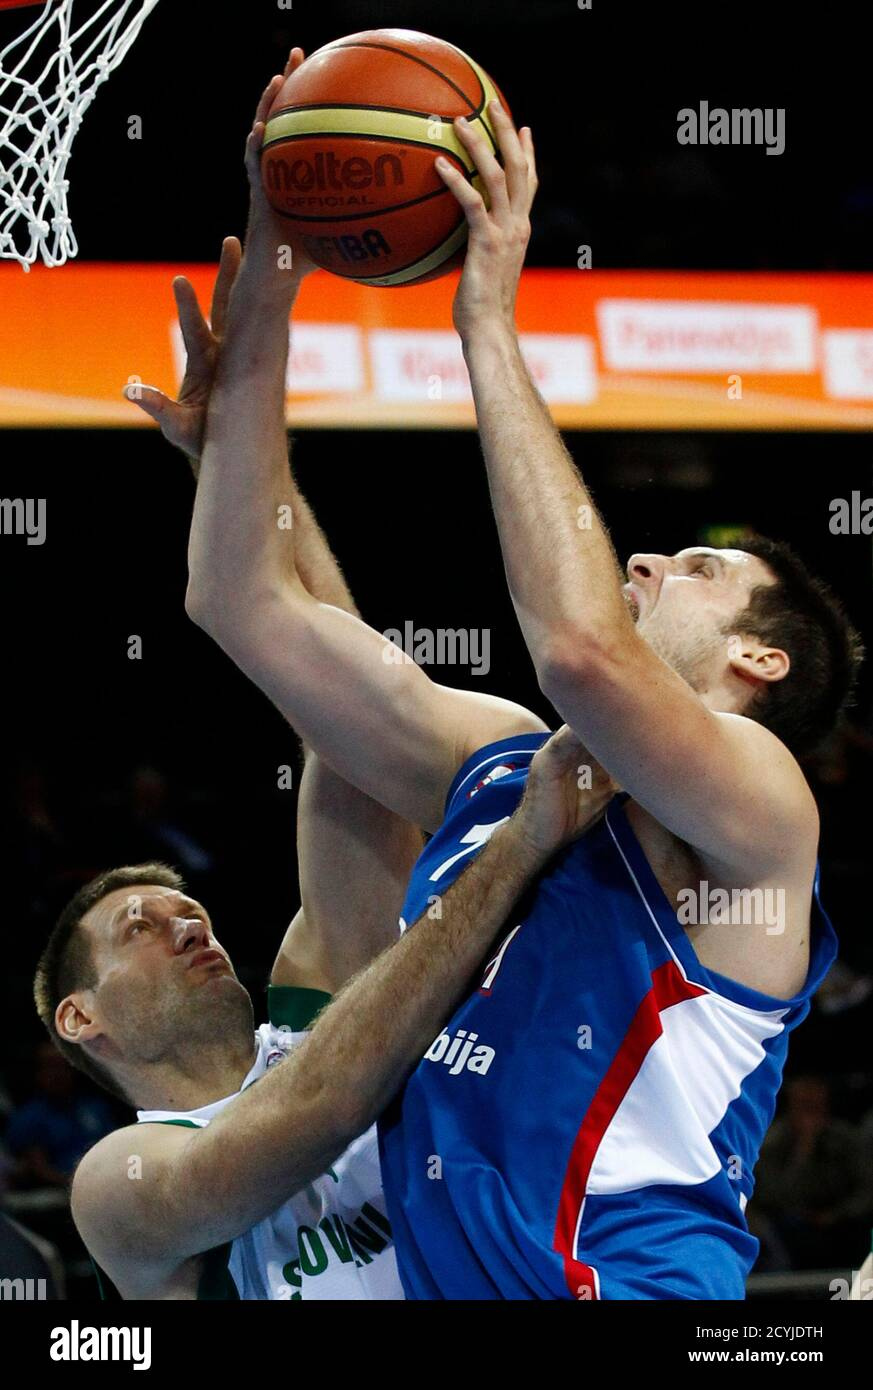 Serbia's Kosta Perovic (R) is challenged by Slovenia's Goran Jagodnik during their FIBA EuroBasket 2011 basketball game in Kaunas September 17, 2011.  The teams are playing for the 7th and 8th positions.  REUTERS/Ivan Milutinovic (LITHUANIA - Tags: SPORT BASKETBALL) Foto de stock